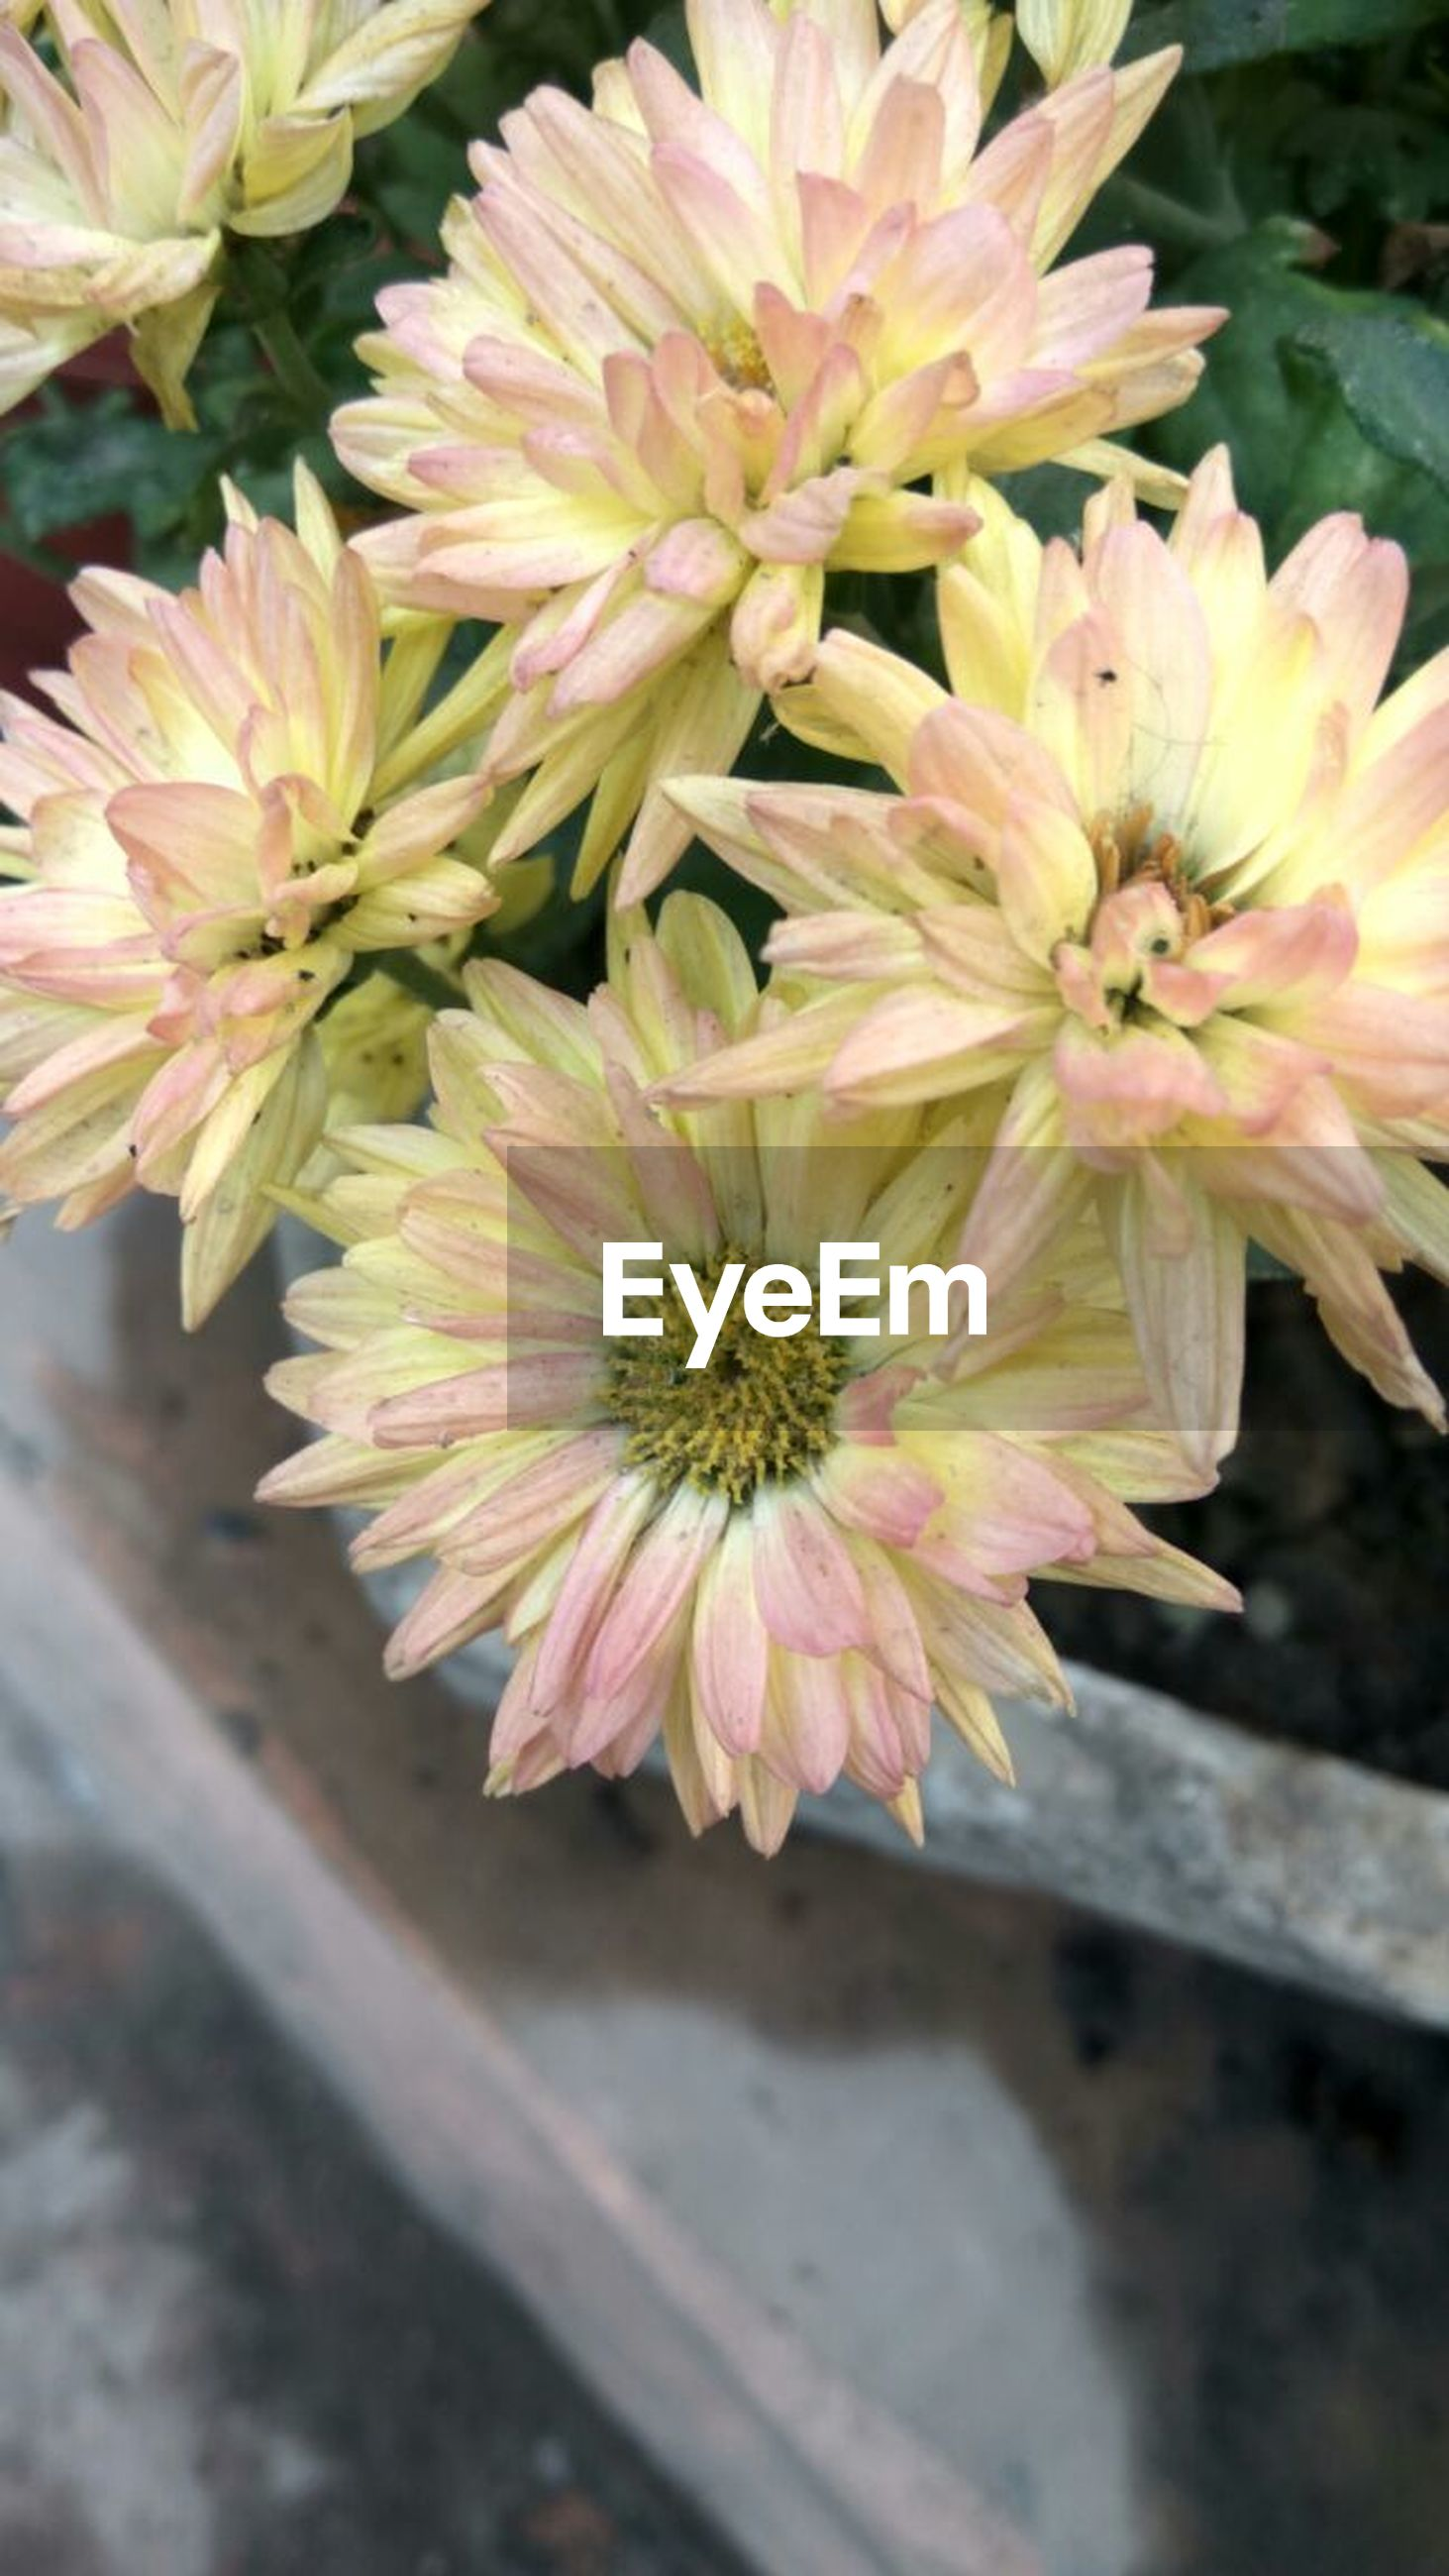 flower, nature, growth, beauty in nature, petal, freshness, fragility, plant, flower head, outdoors, no people, day, close-up, blooming